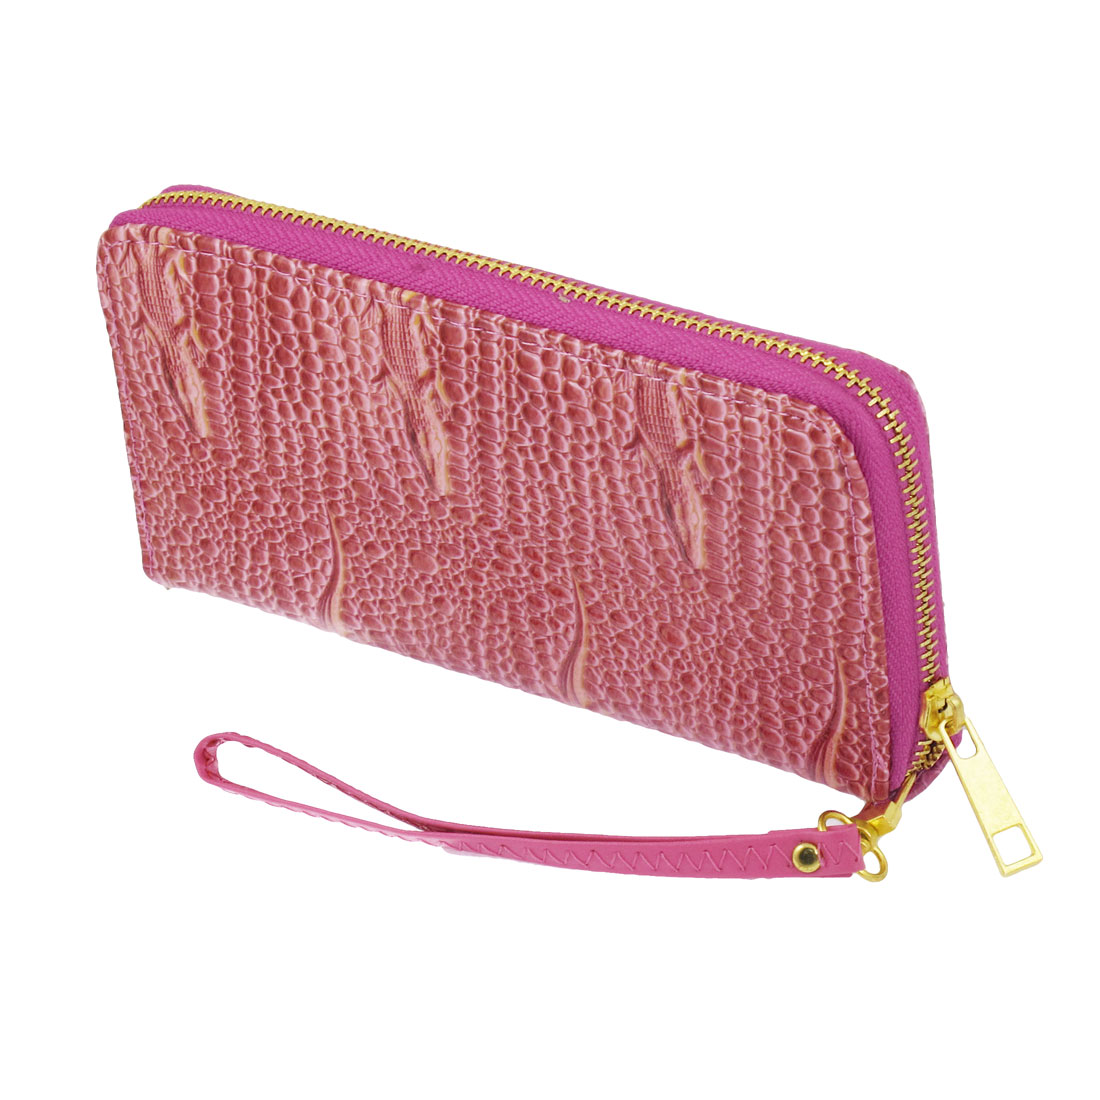 Lady Faux Leather Lizard Crocodile Print Zipper Wallet Bag Purse Magenta